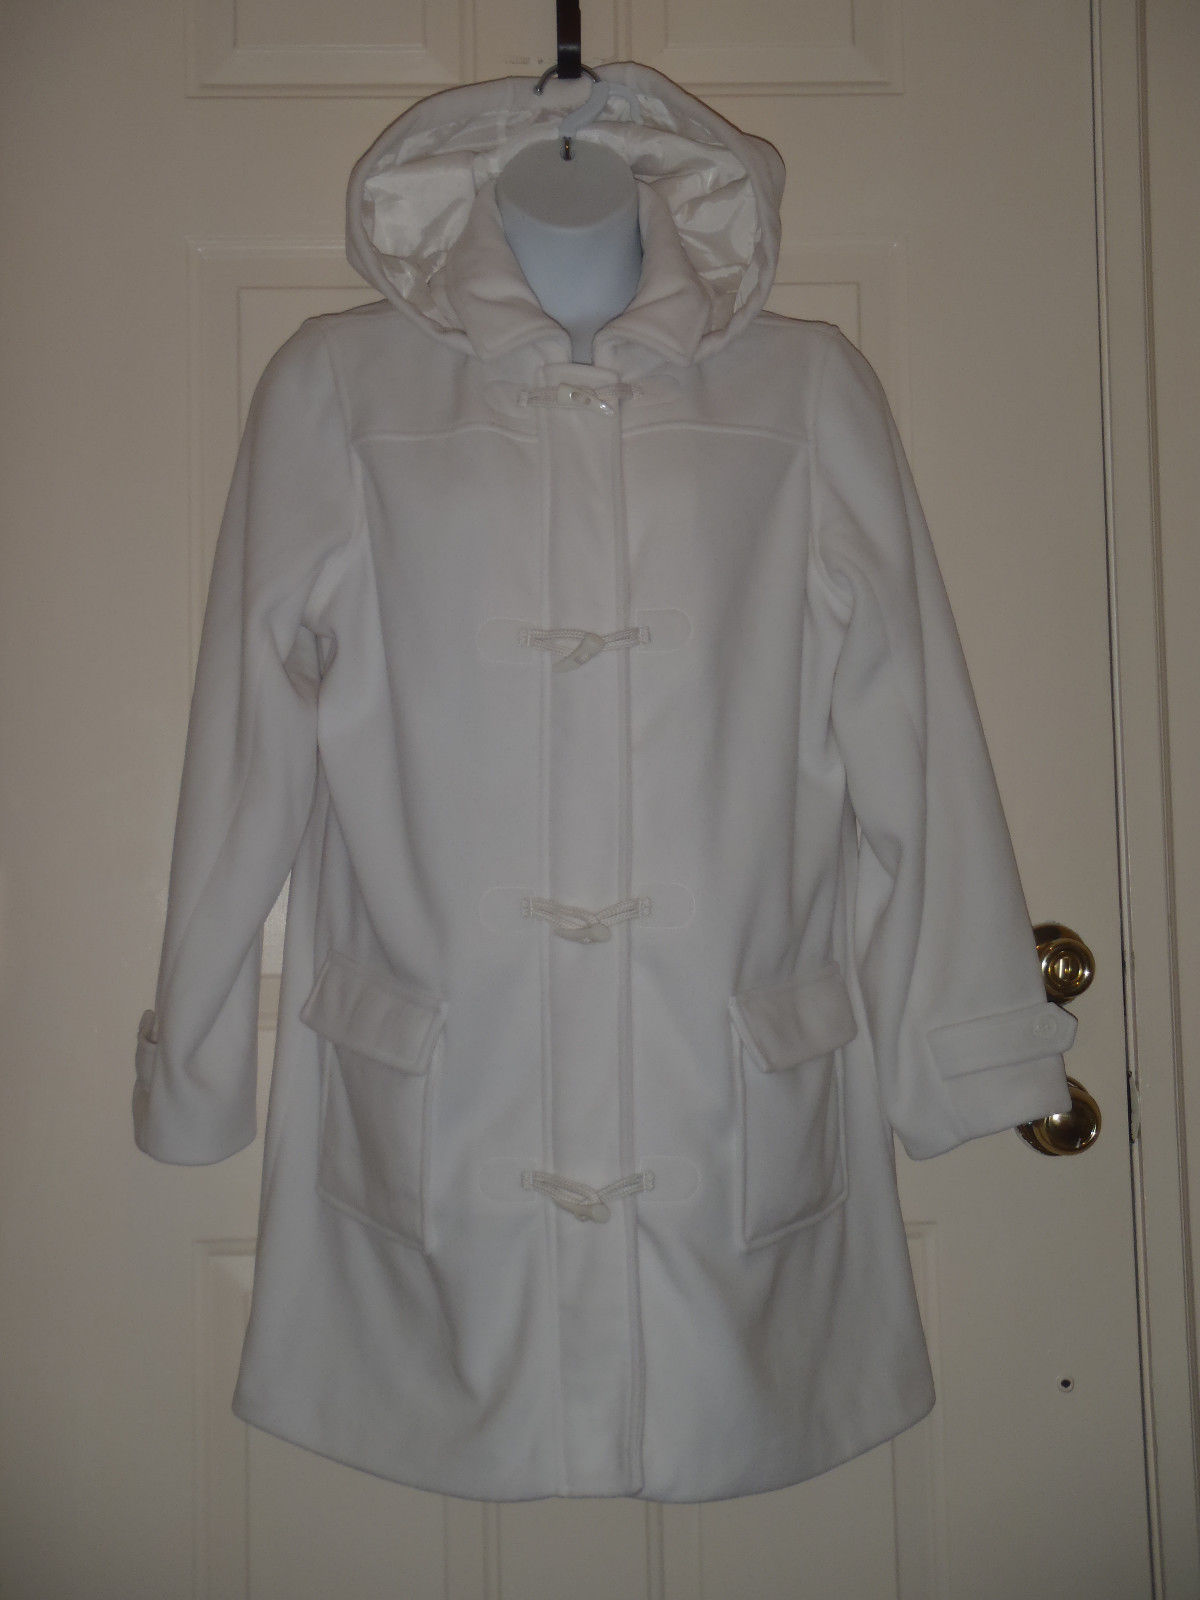 Denim Co Microfleece Lined Toggle Coat Removable Hood White XL  A3122